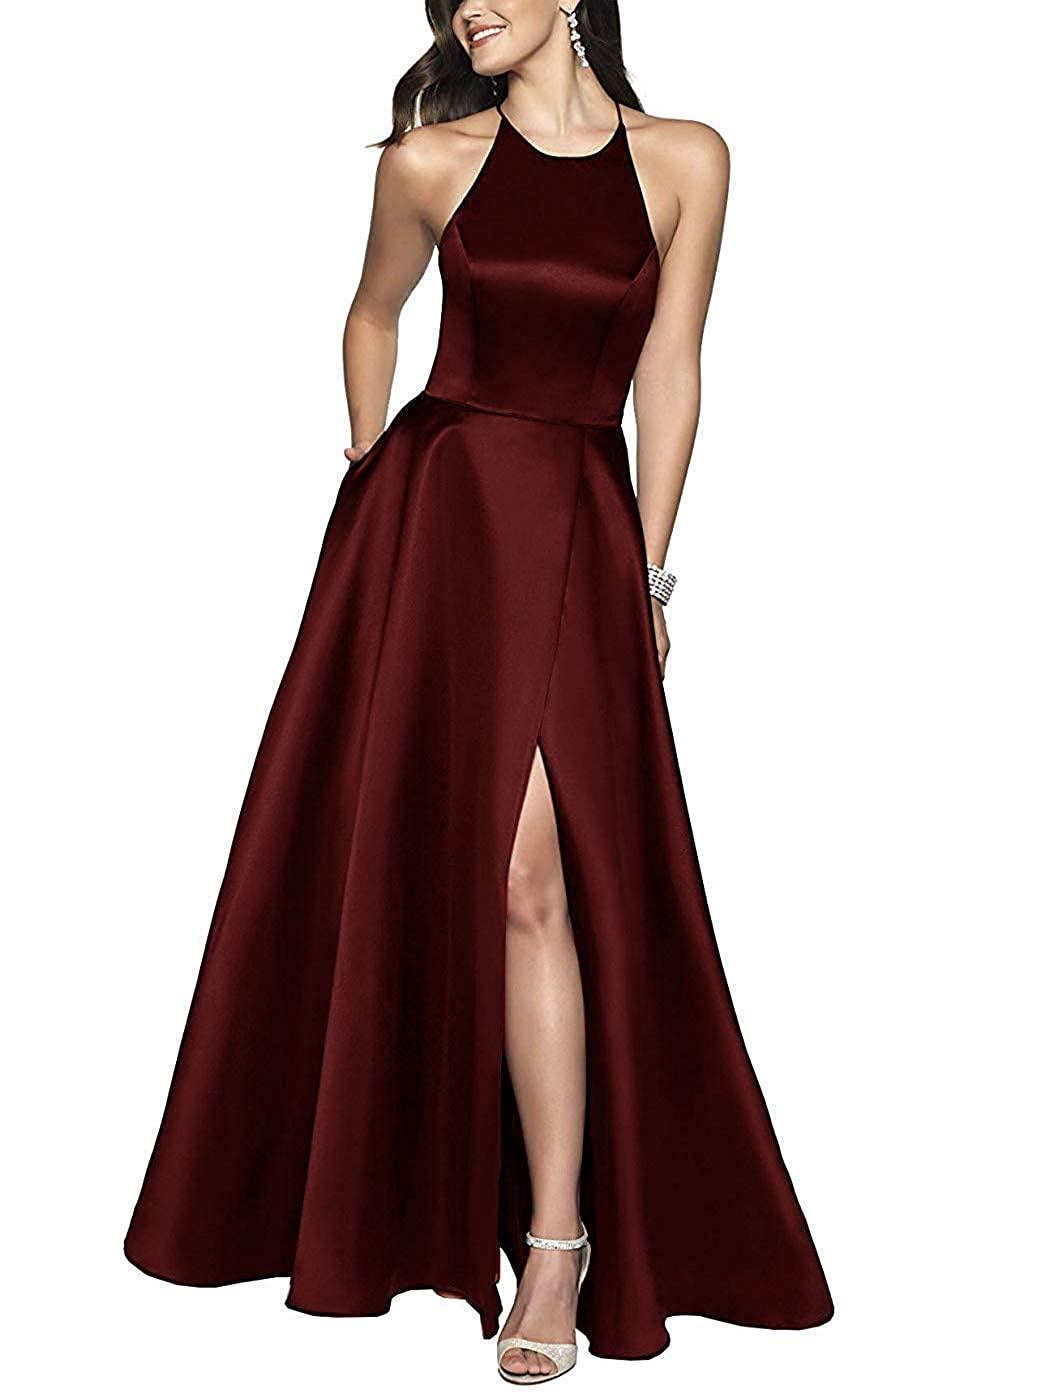 Burgundy ZLQQ Womens Halter Beaded Prom Dress Long with Pockets Slit Beach Wedding Evening Gowns